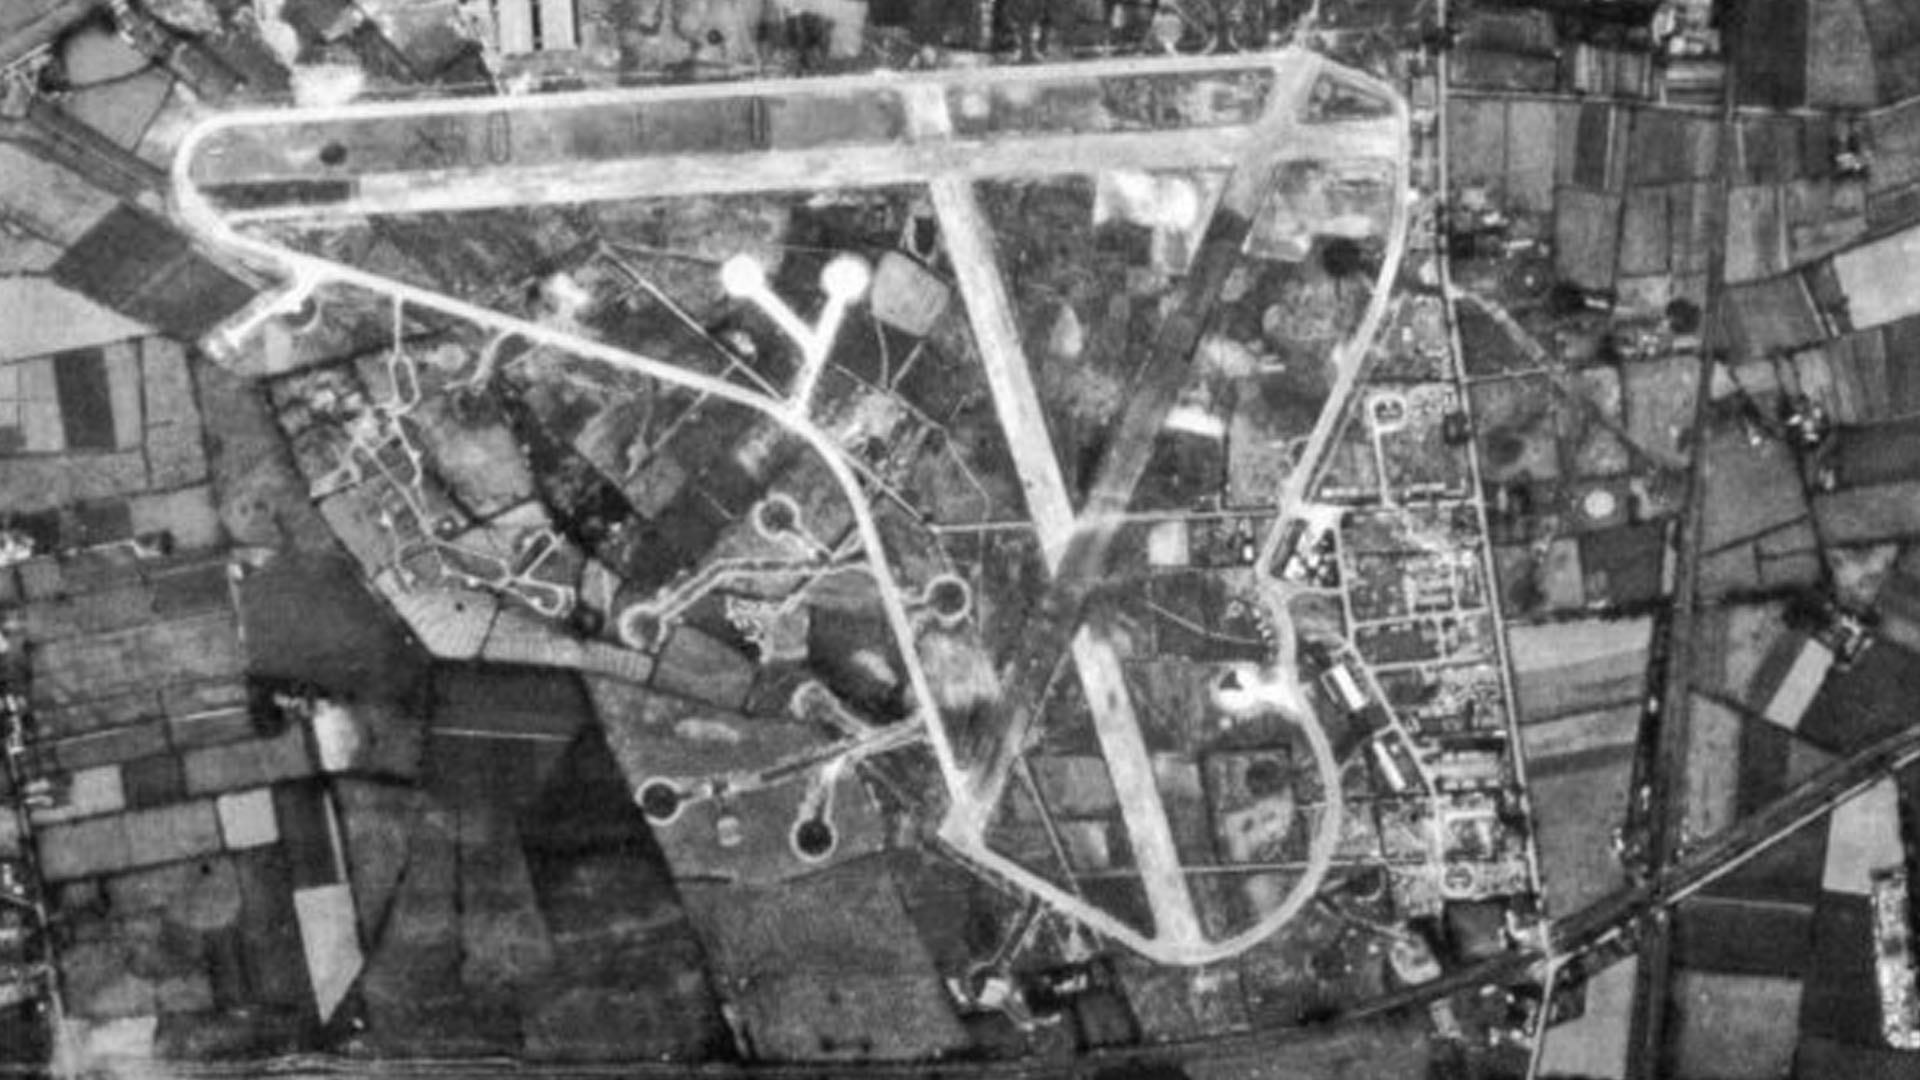 RAF Long Kesh, Co. Down